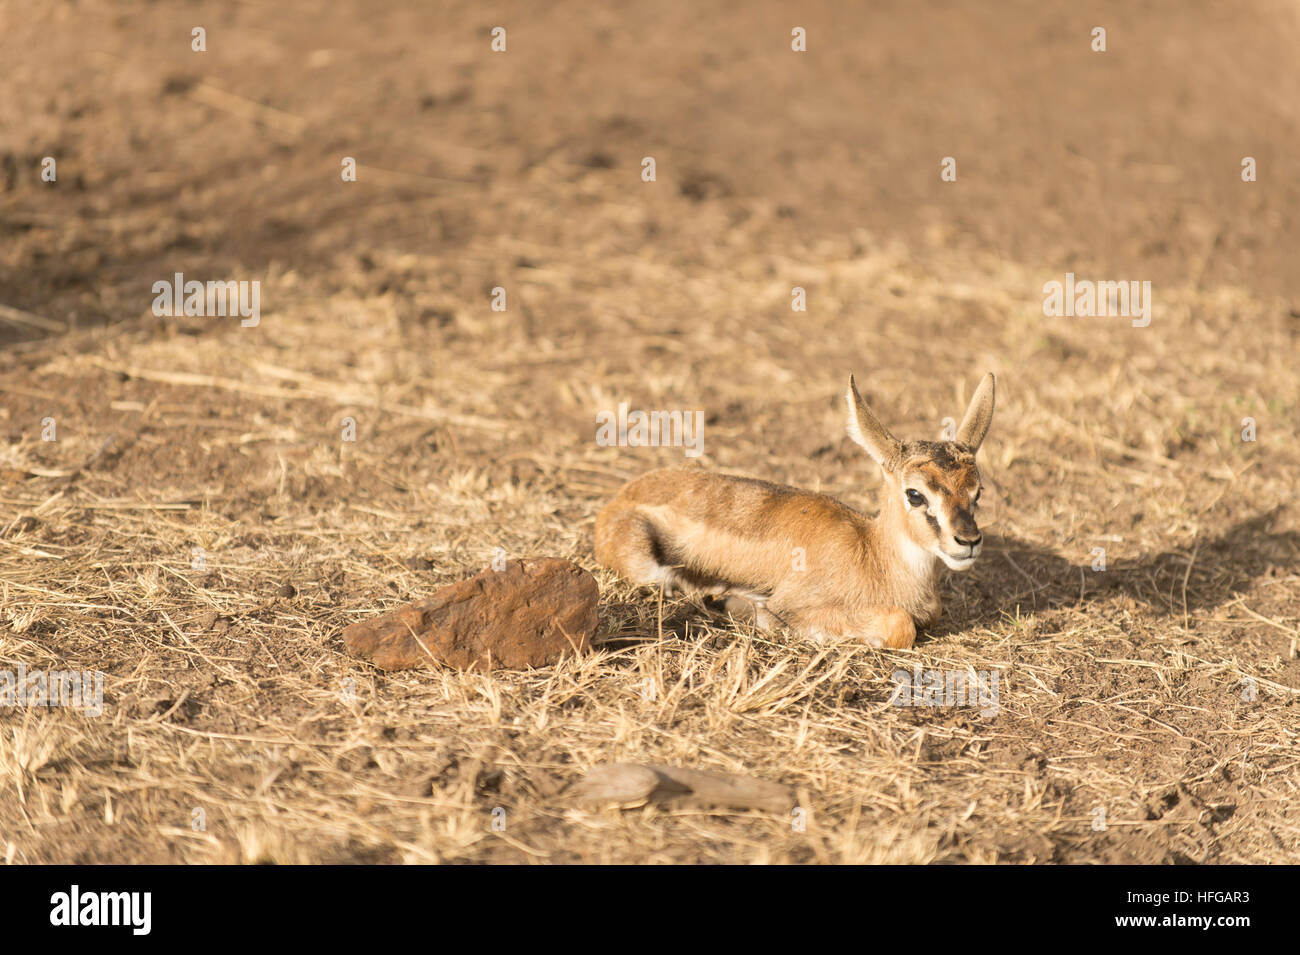 Baby Thomsons gazelle left alone by its mother to hide its presence from predators - Stock Image